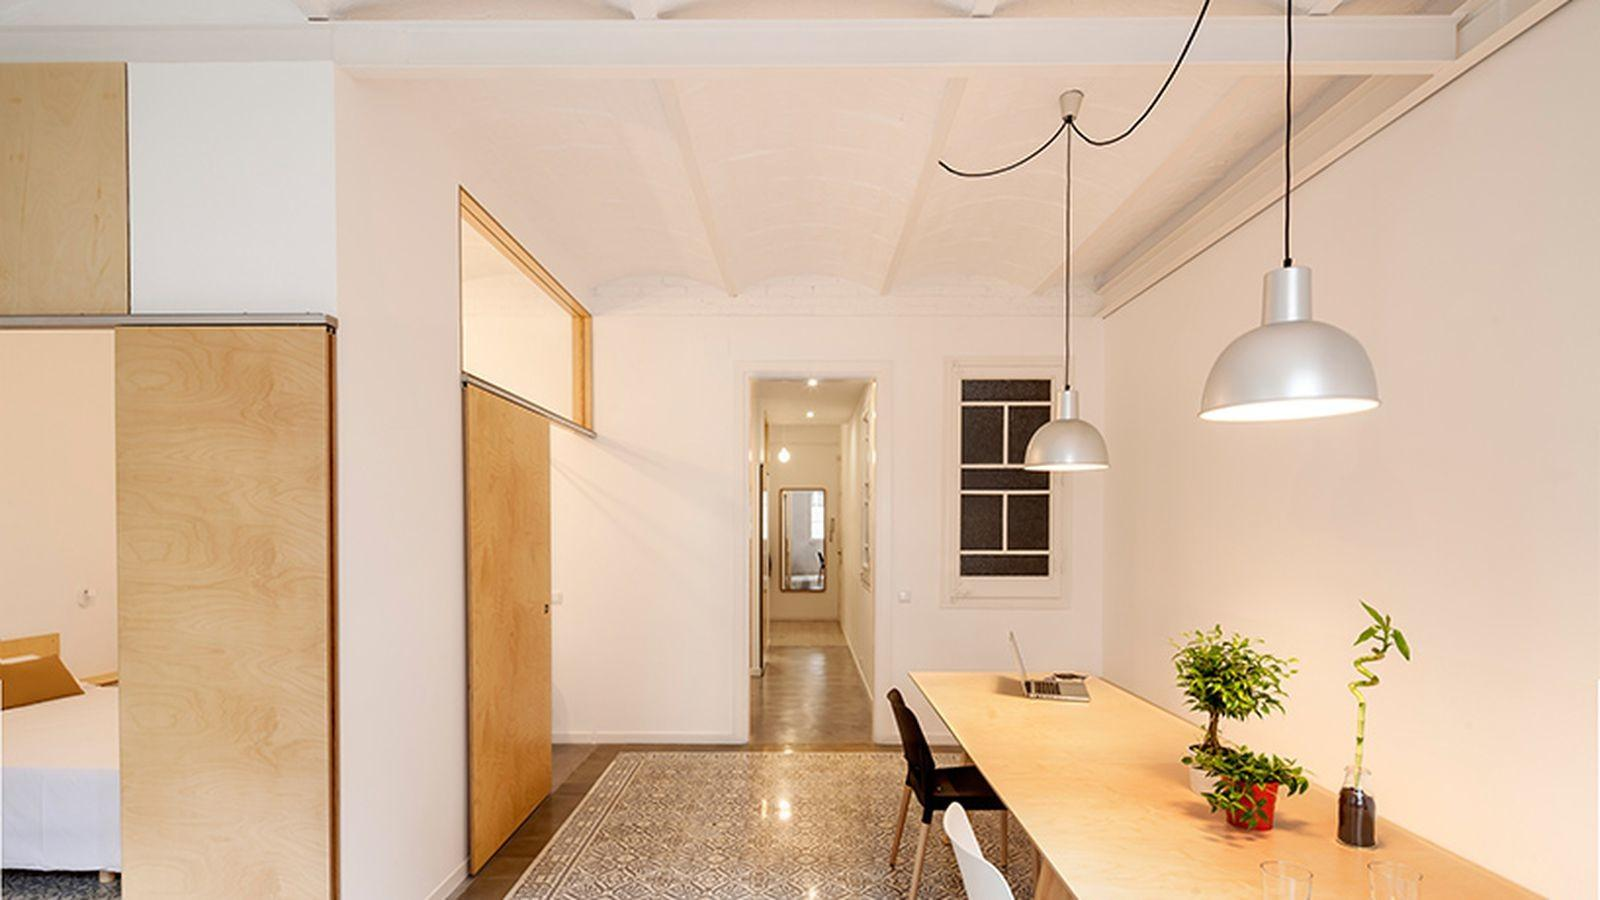 Renovation 1930s Apartment Unveils Gorgeous Ceramic